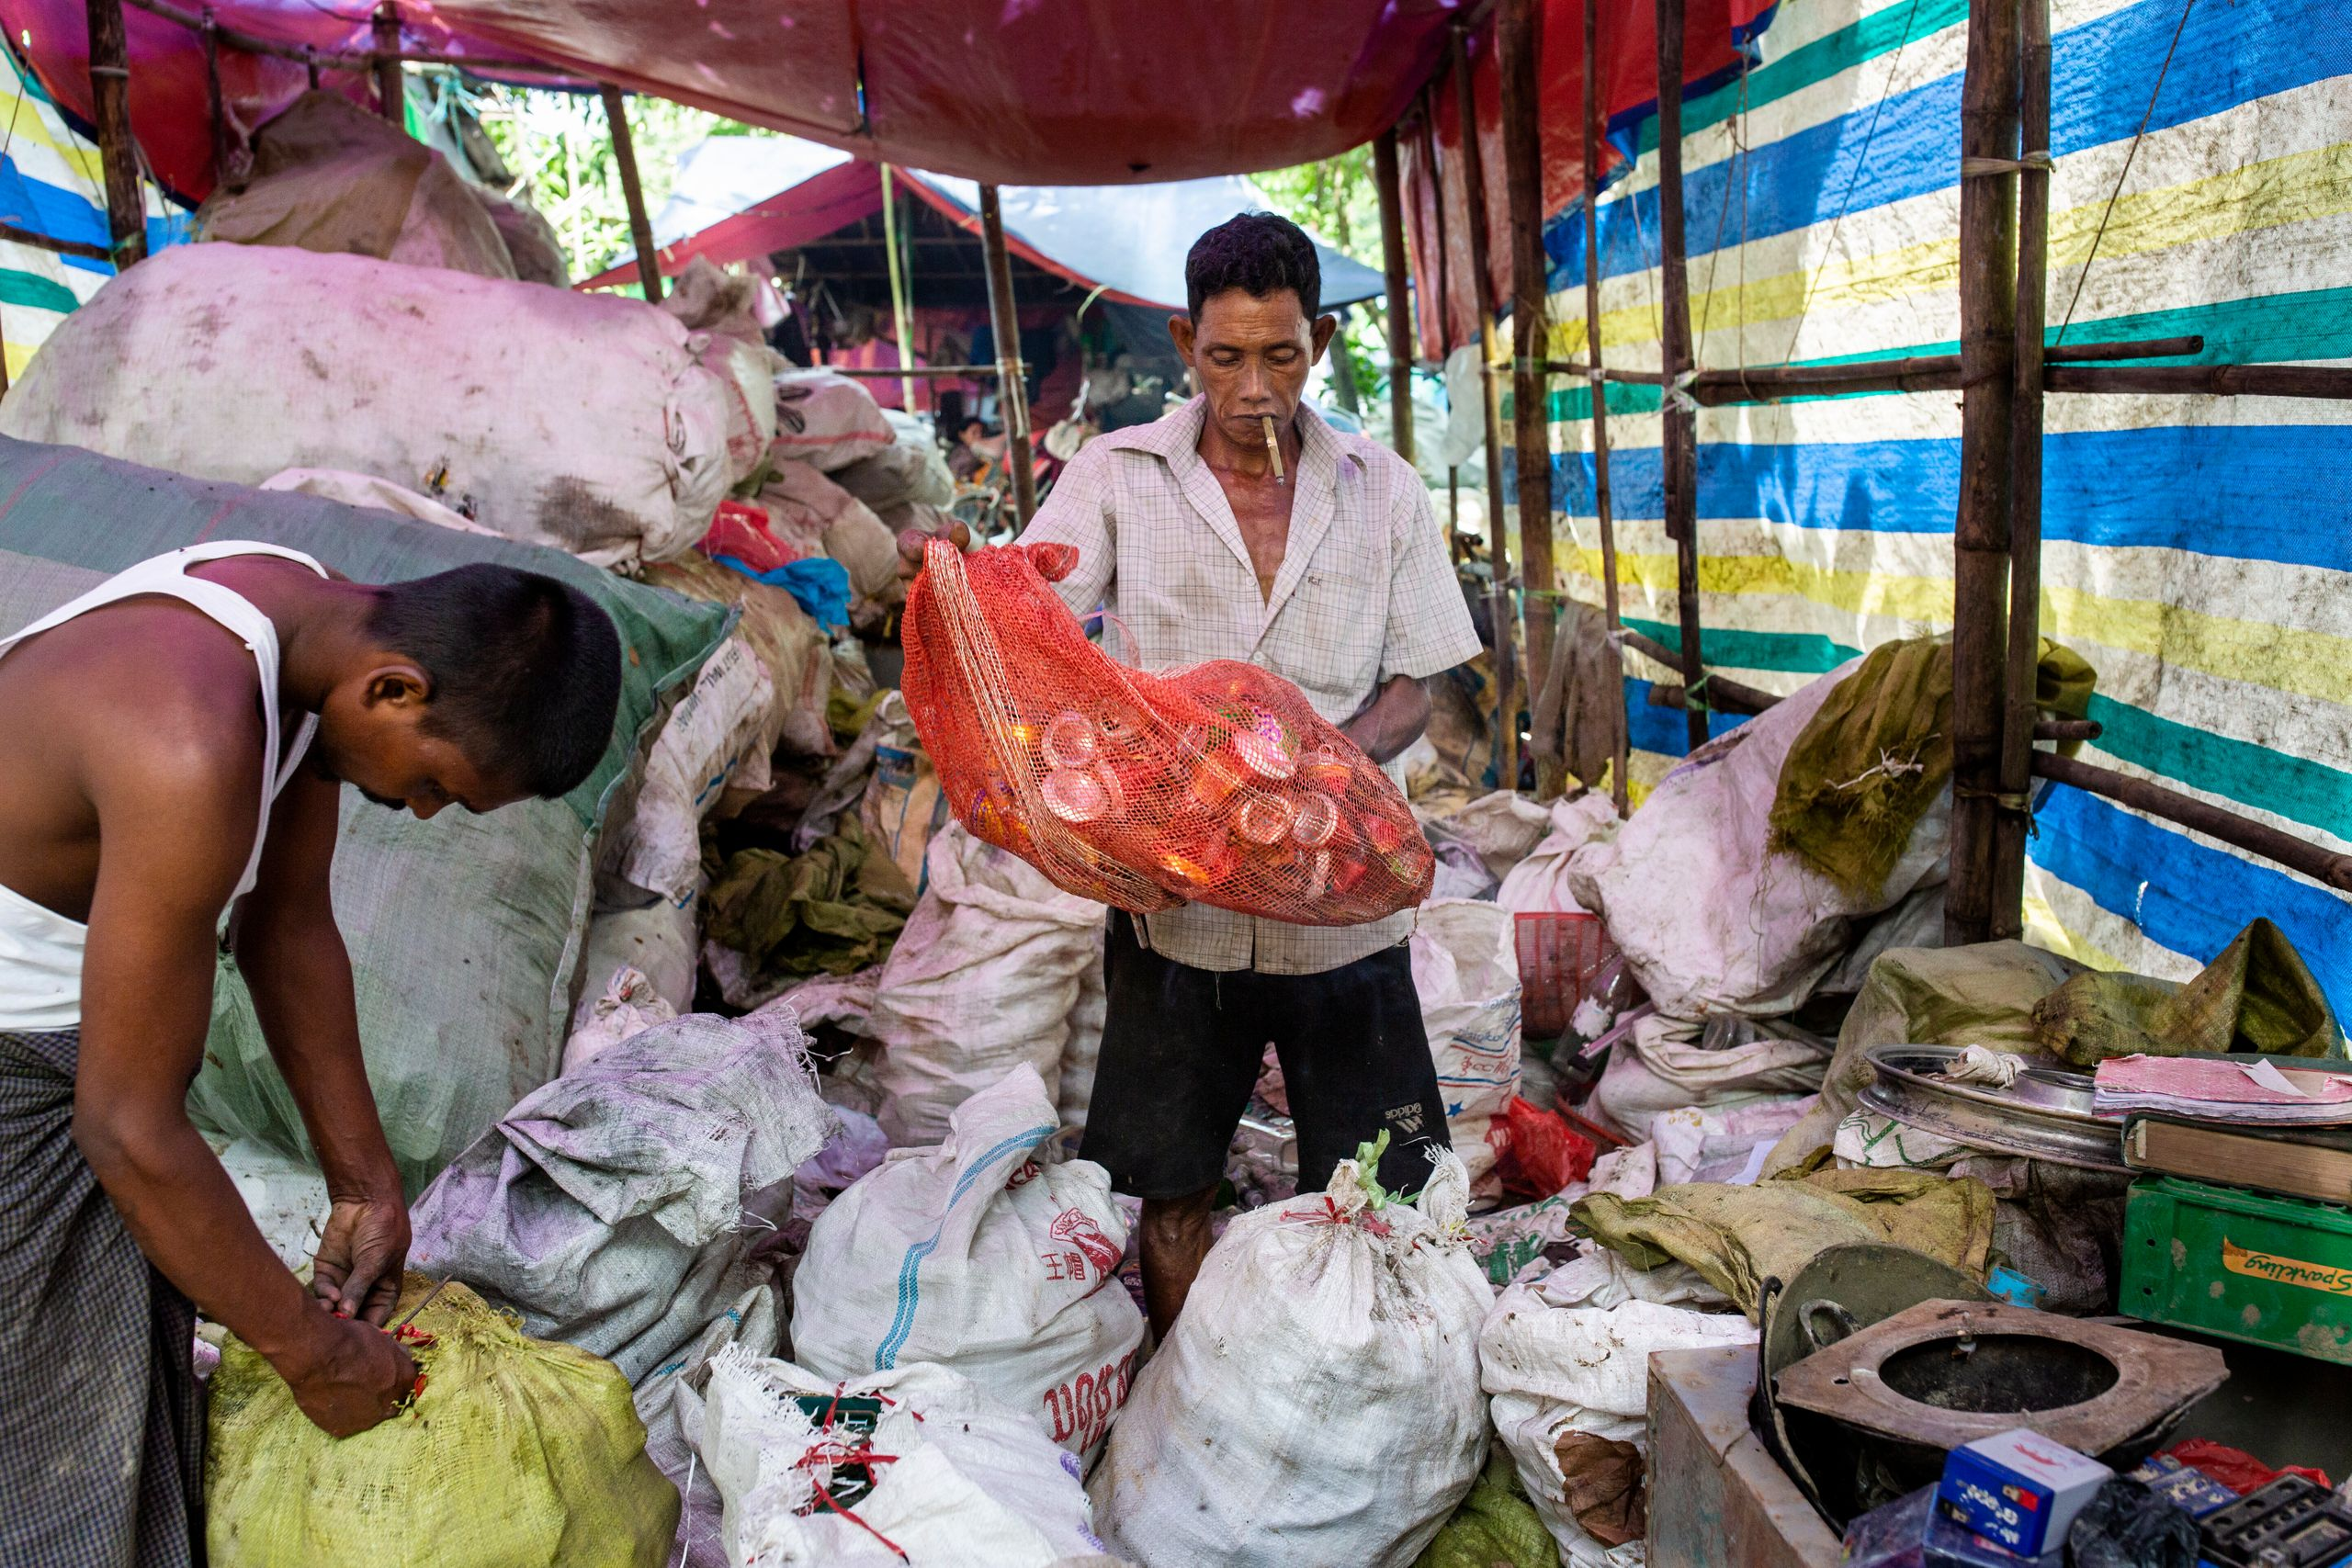 A man organizes materials at the recycle shop before sending them to the recycling factory.